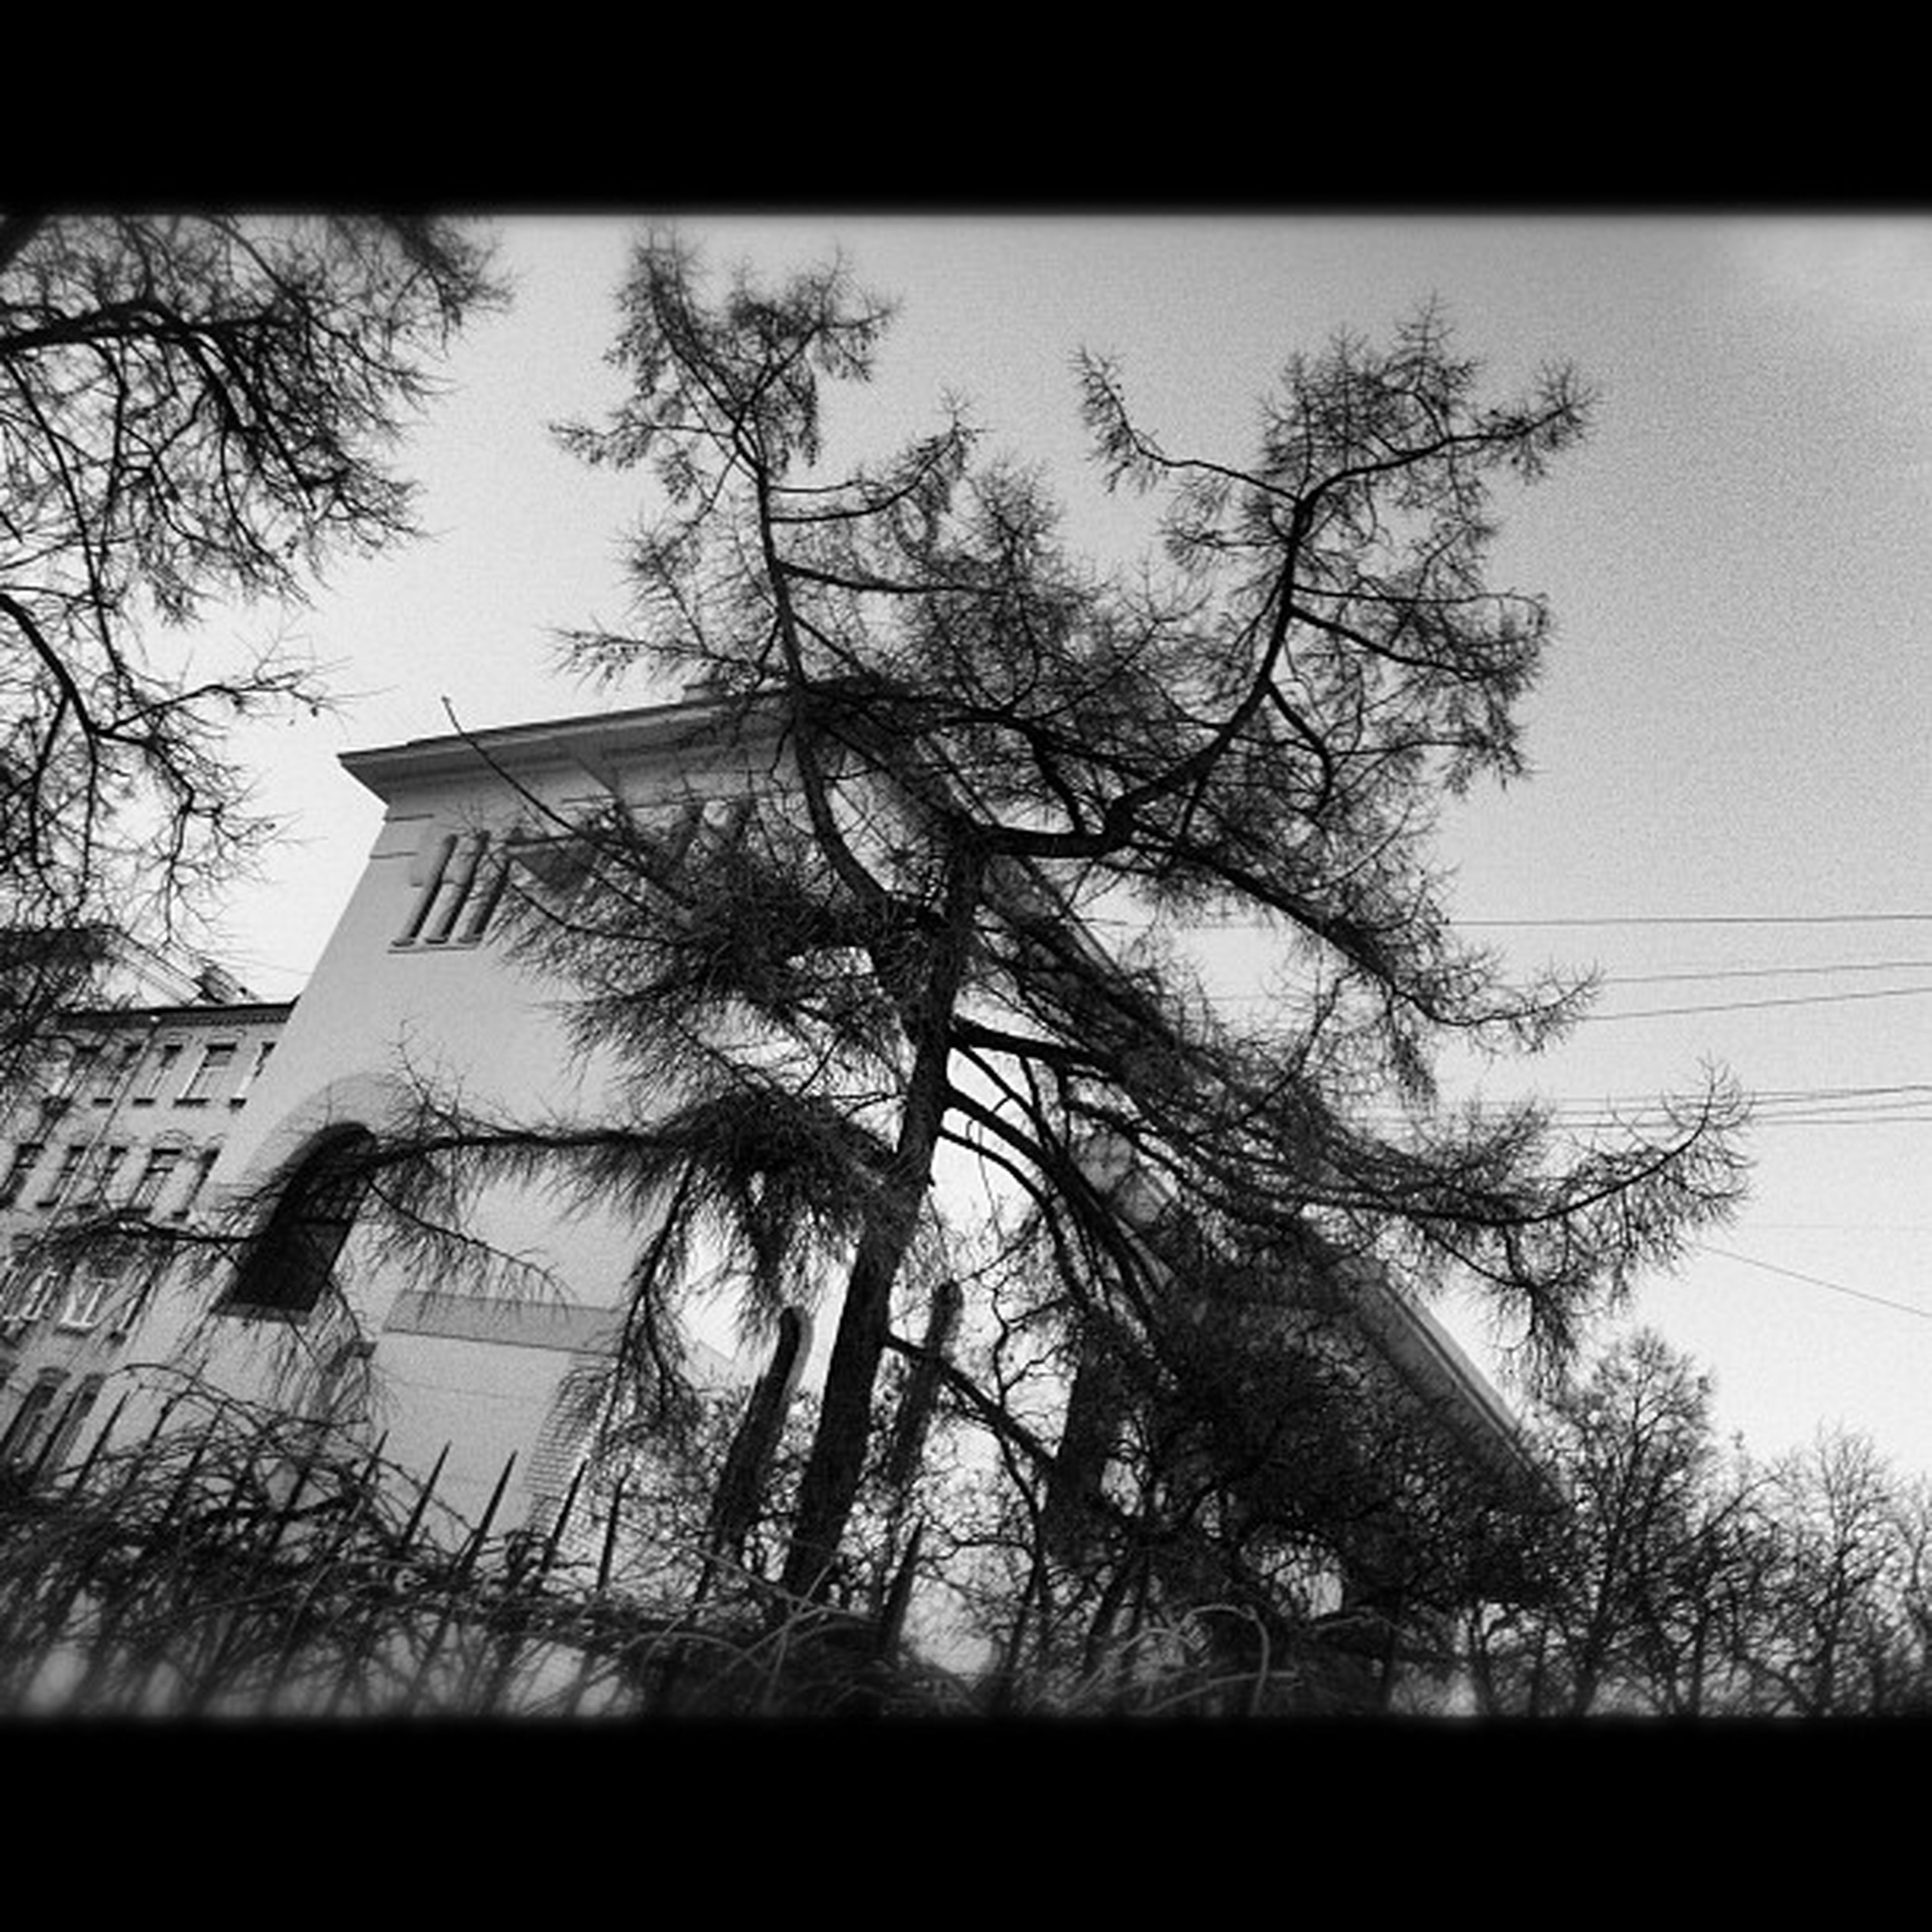 bare tree, tree, building exterior, architecture, built structure, transfer print, branch, low angle view, auto post production filter, sky, silhouette, no people, outdoors, day, power line, clear sky, house, building, city, nature